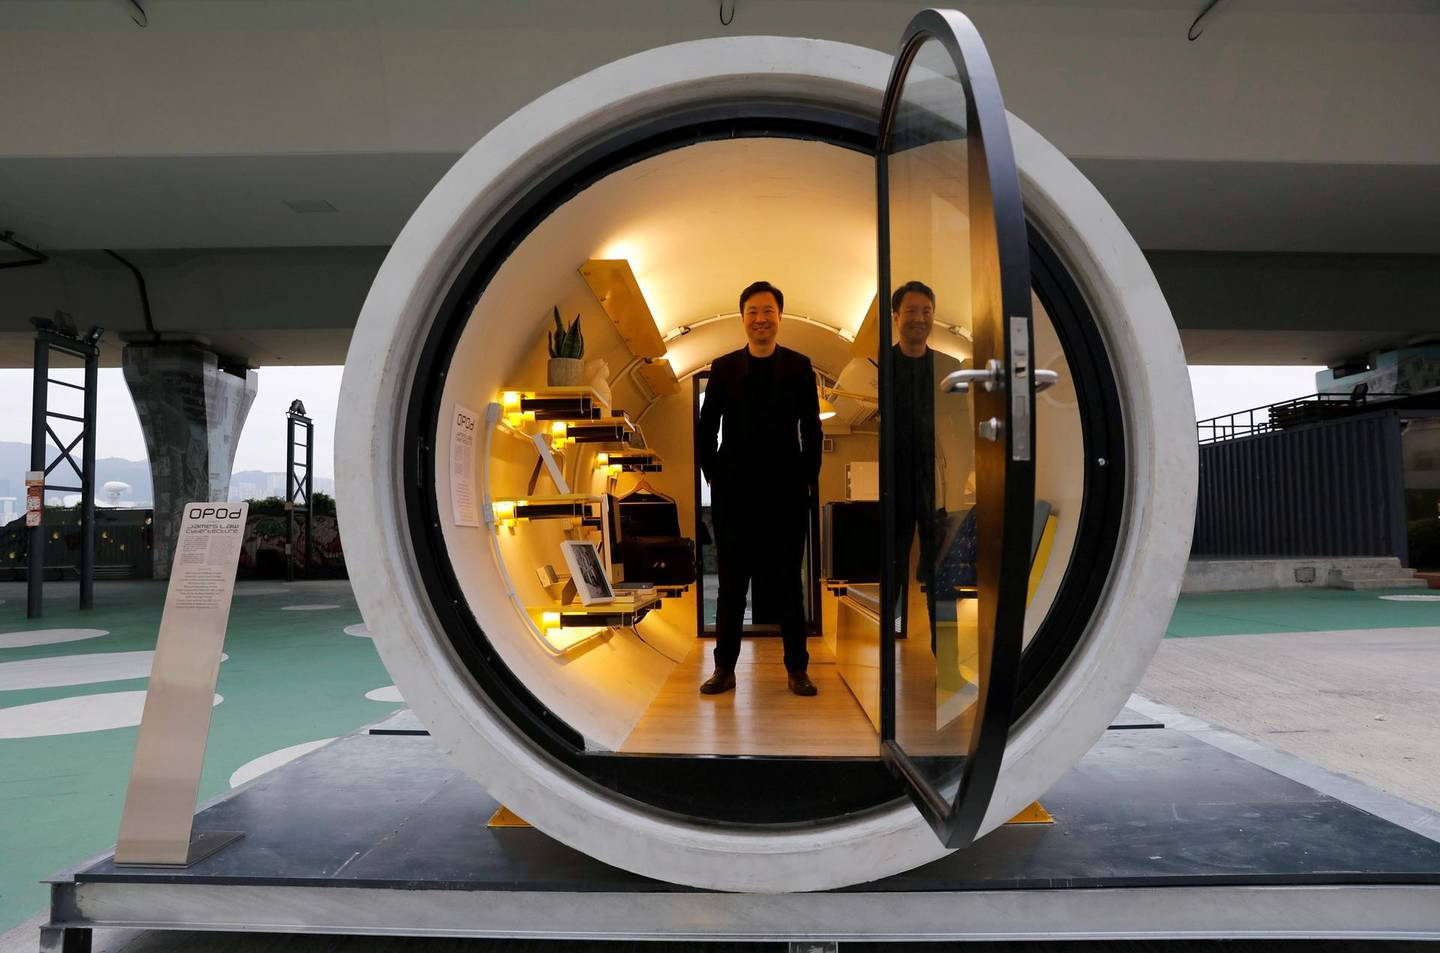 """Architect James Law poses inside of his work, """"Opod"""", a 120-square-ft giant water pipes, designed as micro-housing in Hong Kong, China December 14, 2017. Picture taken on December 14, 2017. REUTERS/Tyrone Siu - RC120FE72920"""